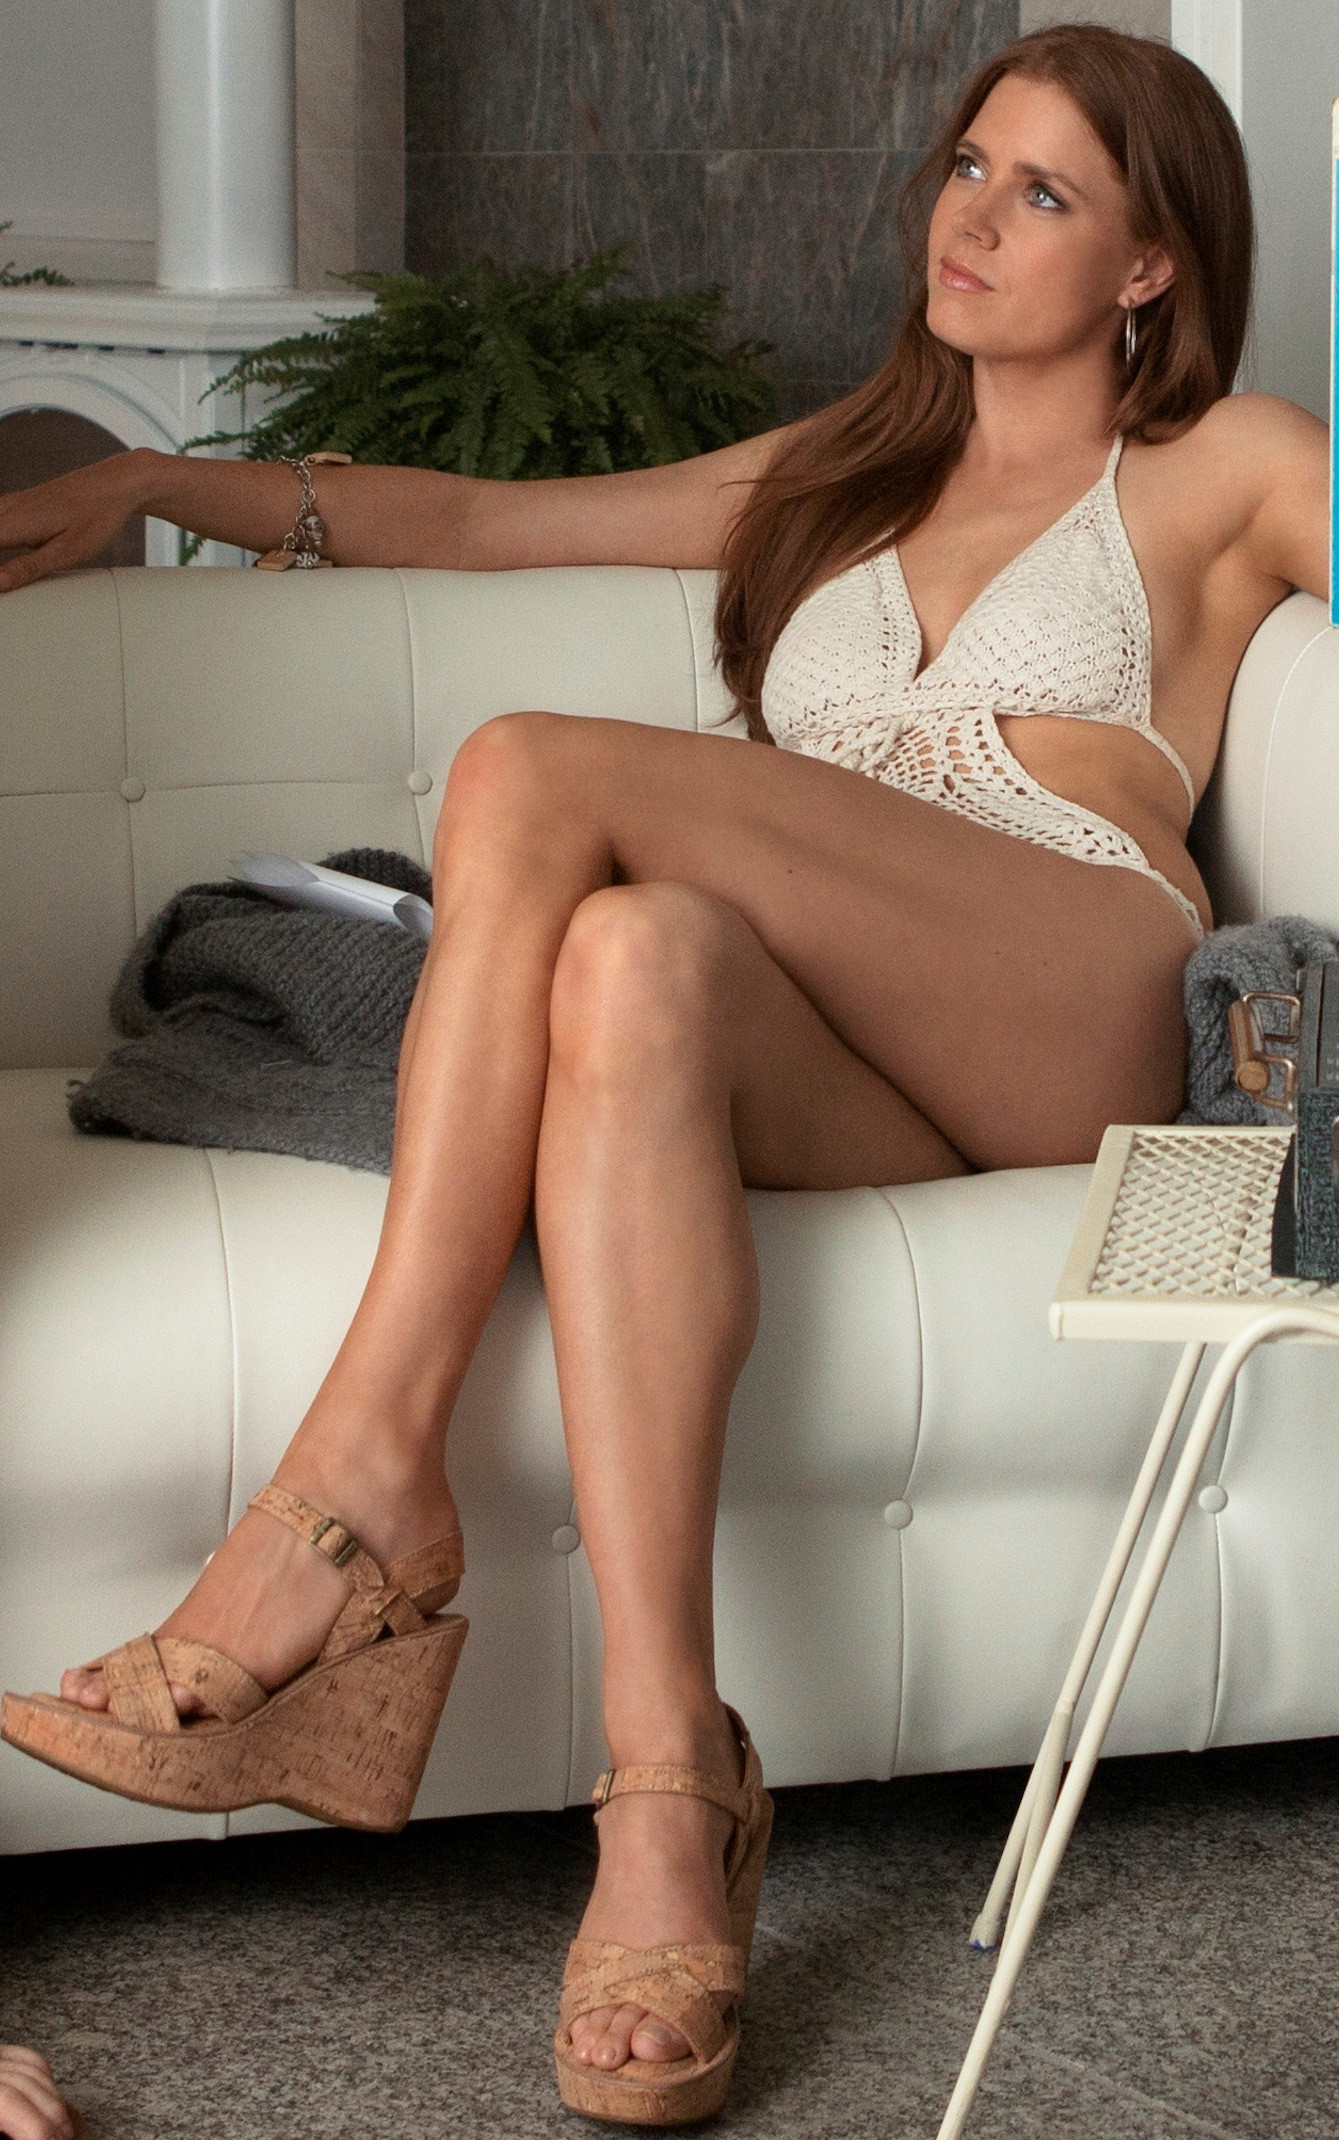 Amy Adams Hot Pics, Leaked Bikini Photoshoots